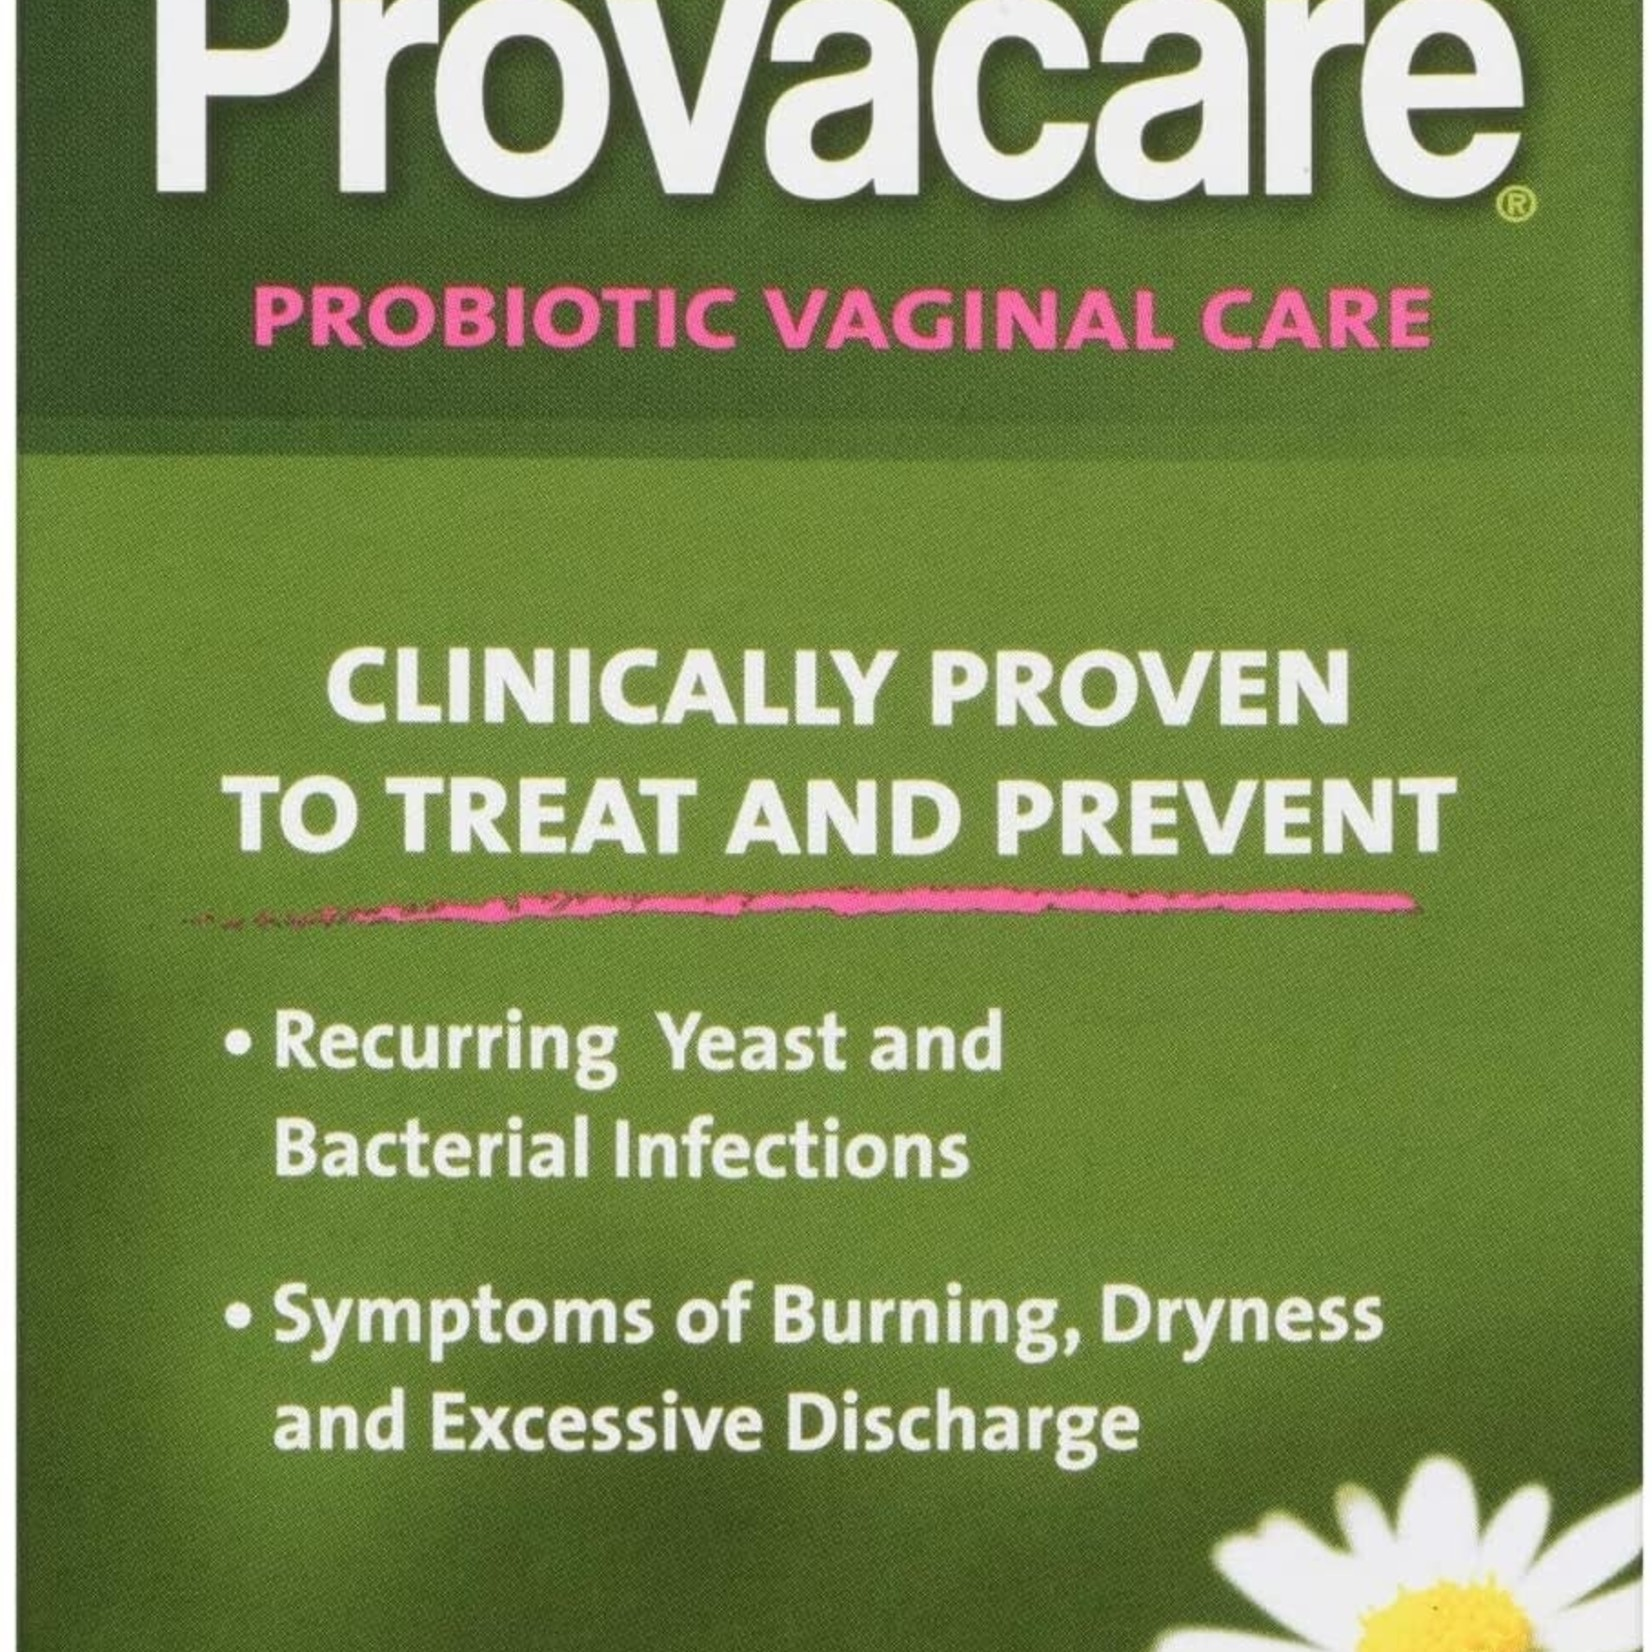 Provacare Probiotic Vaginal Care, Natural Treatment for Vaginal Yeast and/or Bacterial Infection, 14-Count